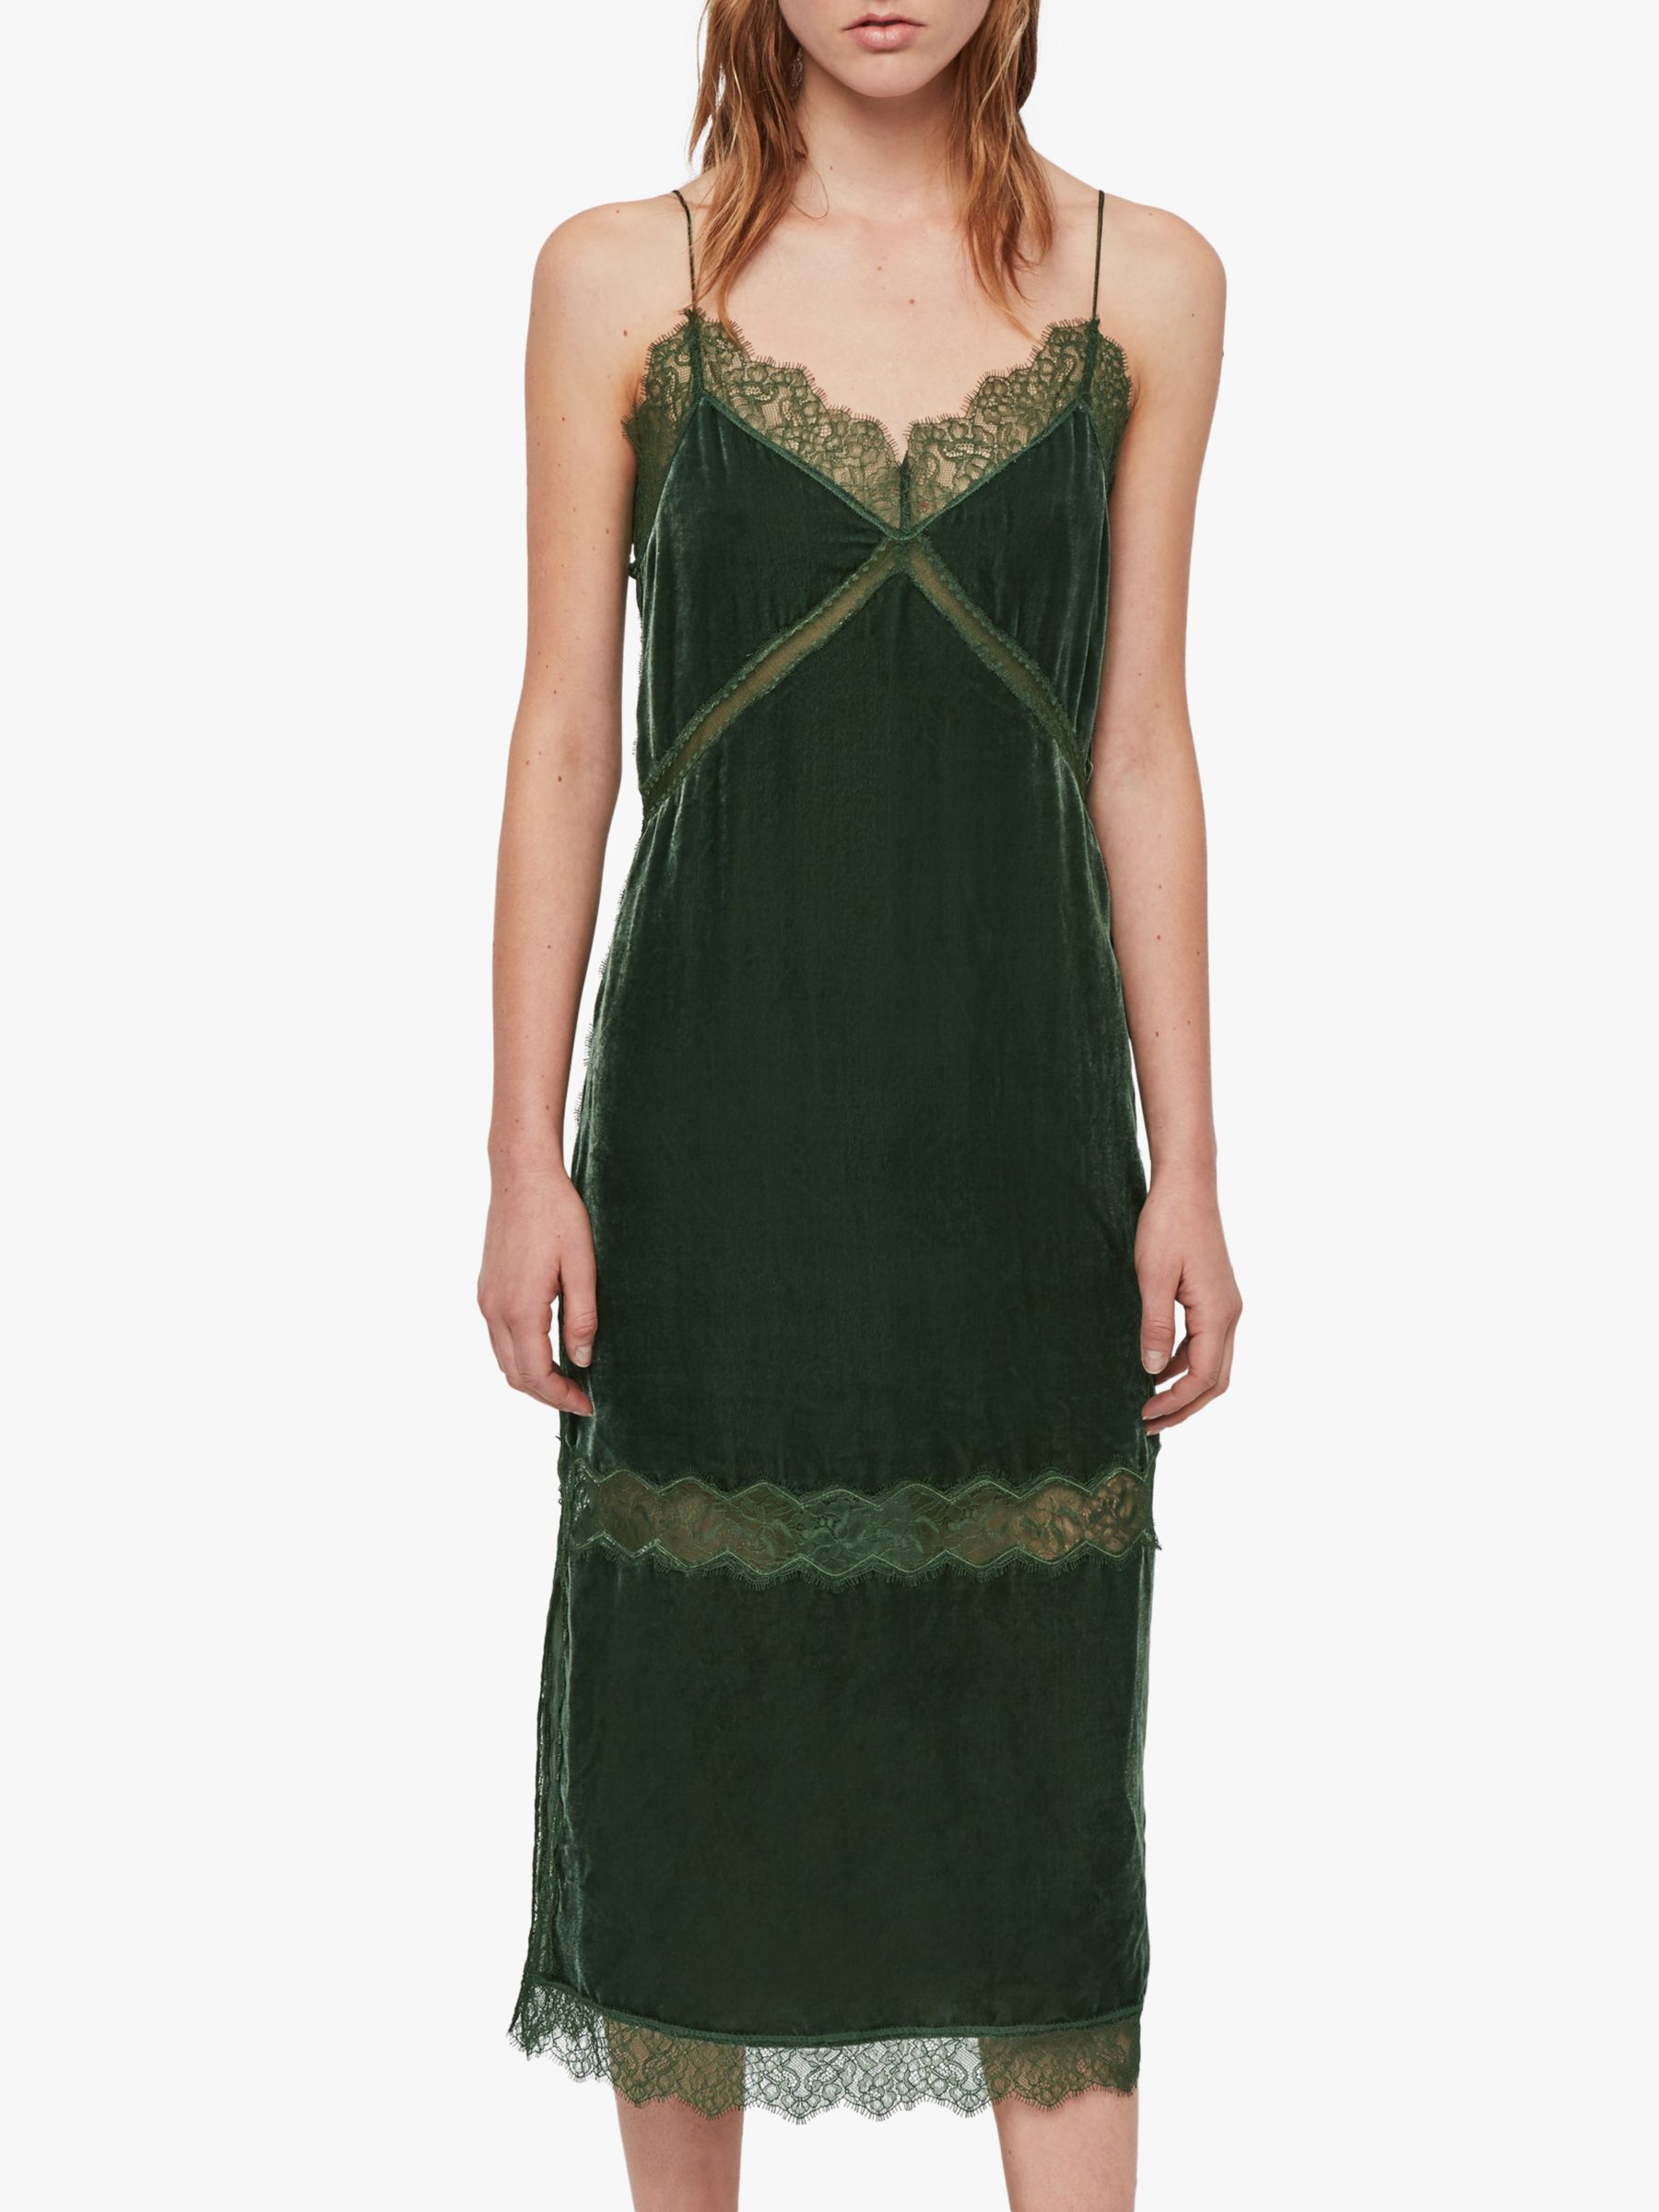 AllSaints Noa Velvet Slip Dress, Green at John Lewis & Partners